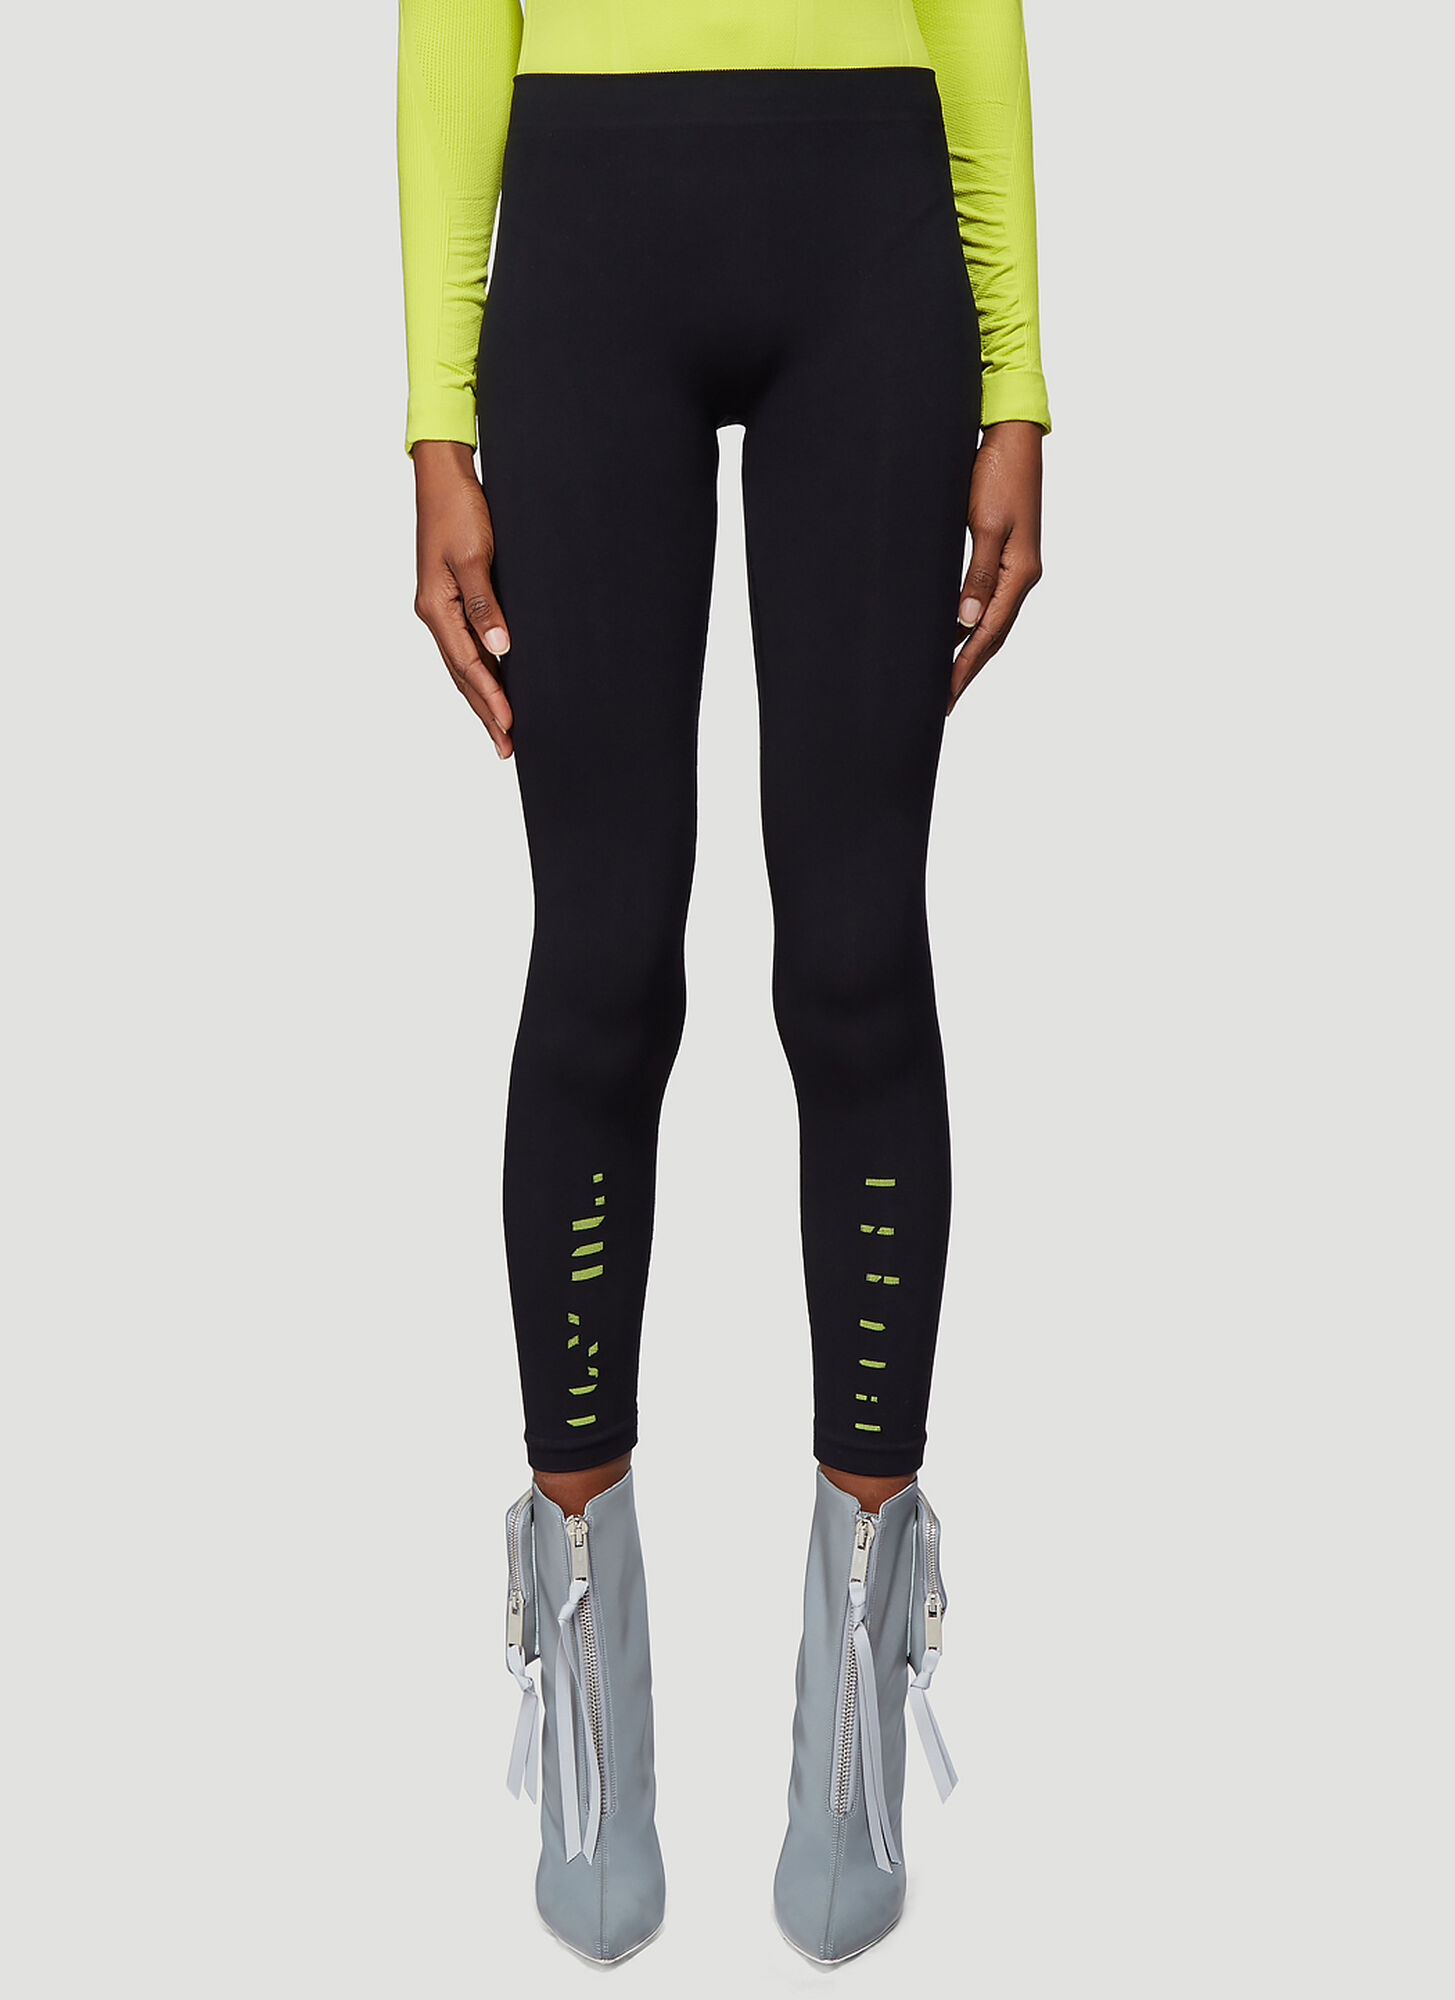 Unravel Project Tech Seamless Leggings in Black